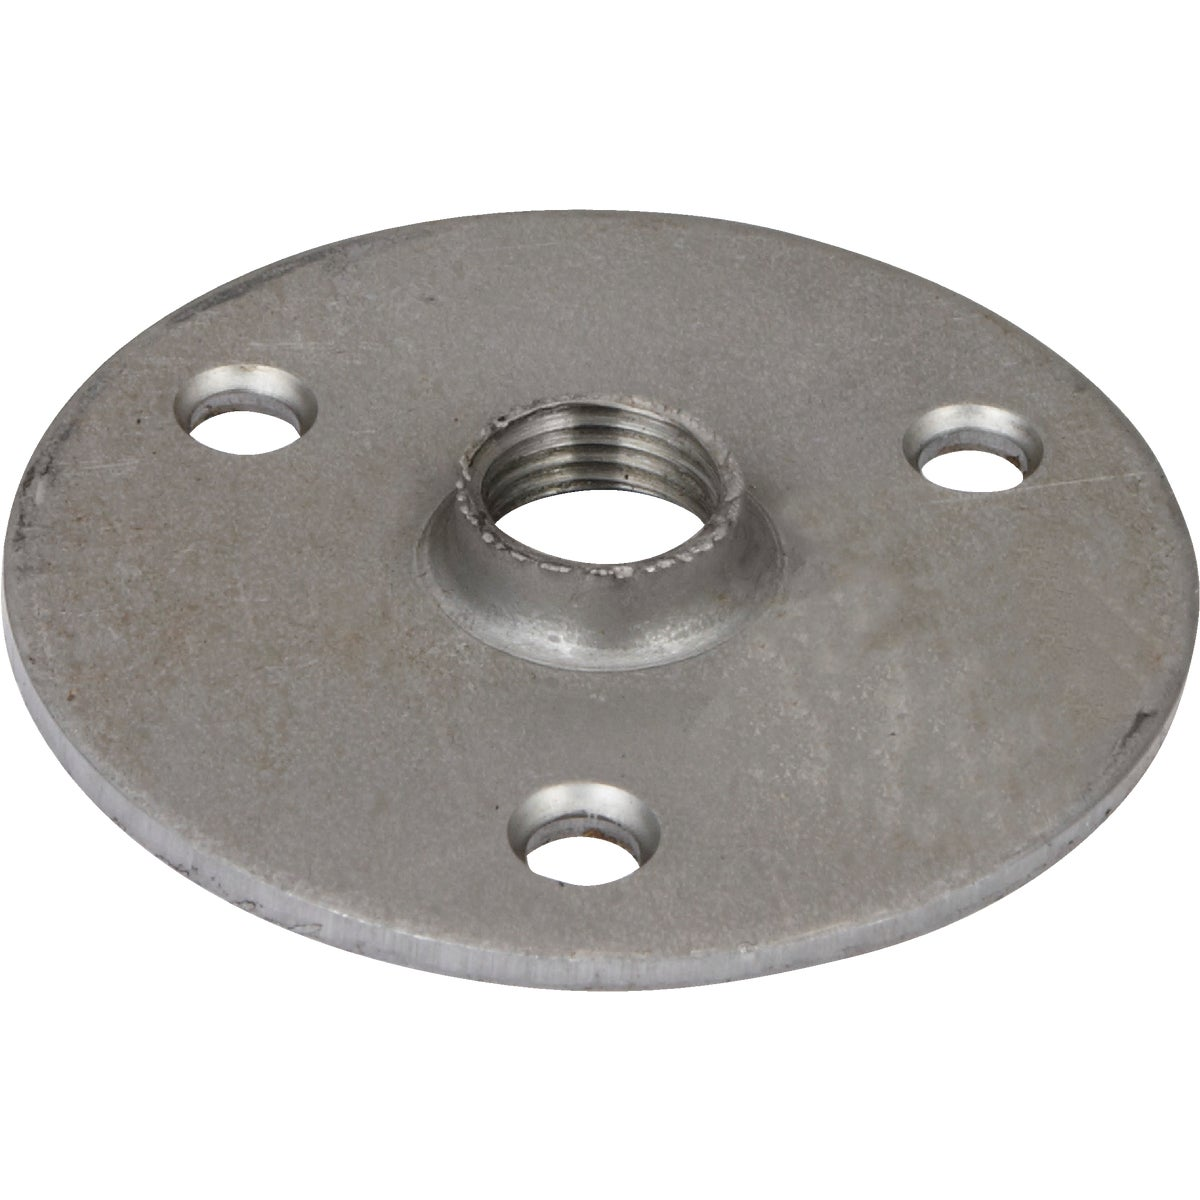 "3/4"" STEEL FLOOR FLANGE -  by Western Reserve Mfg"